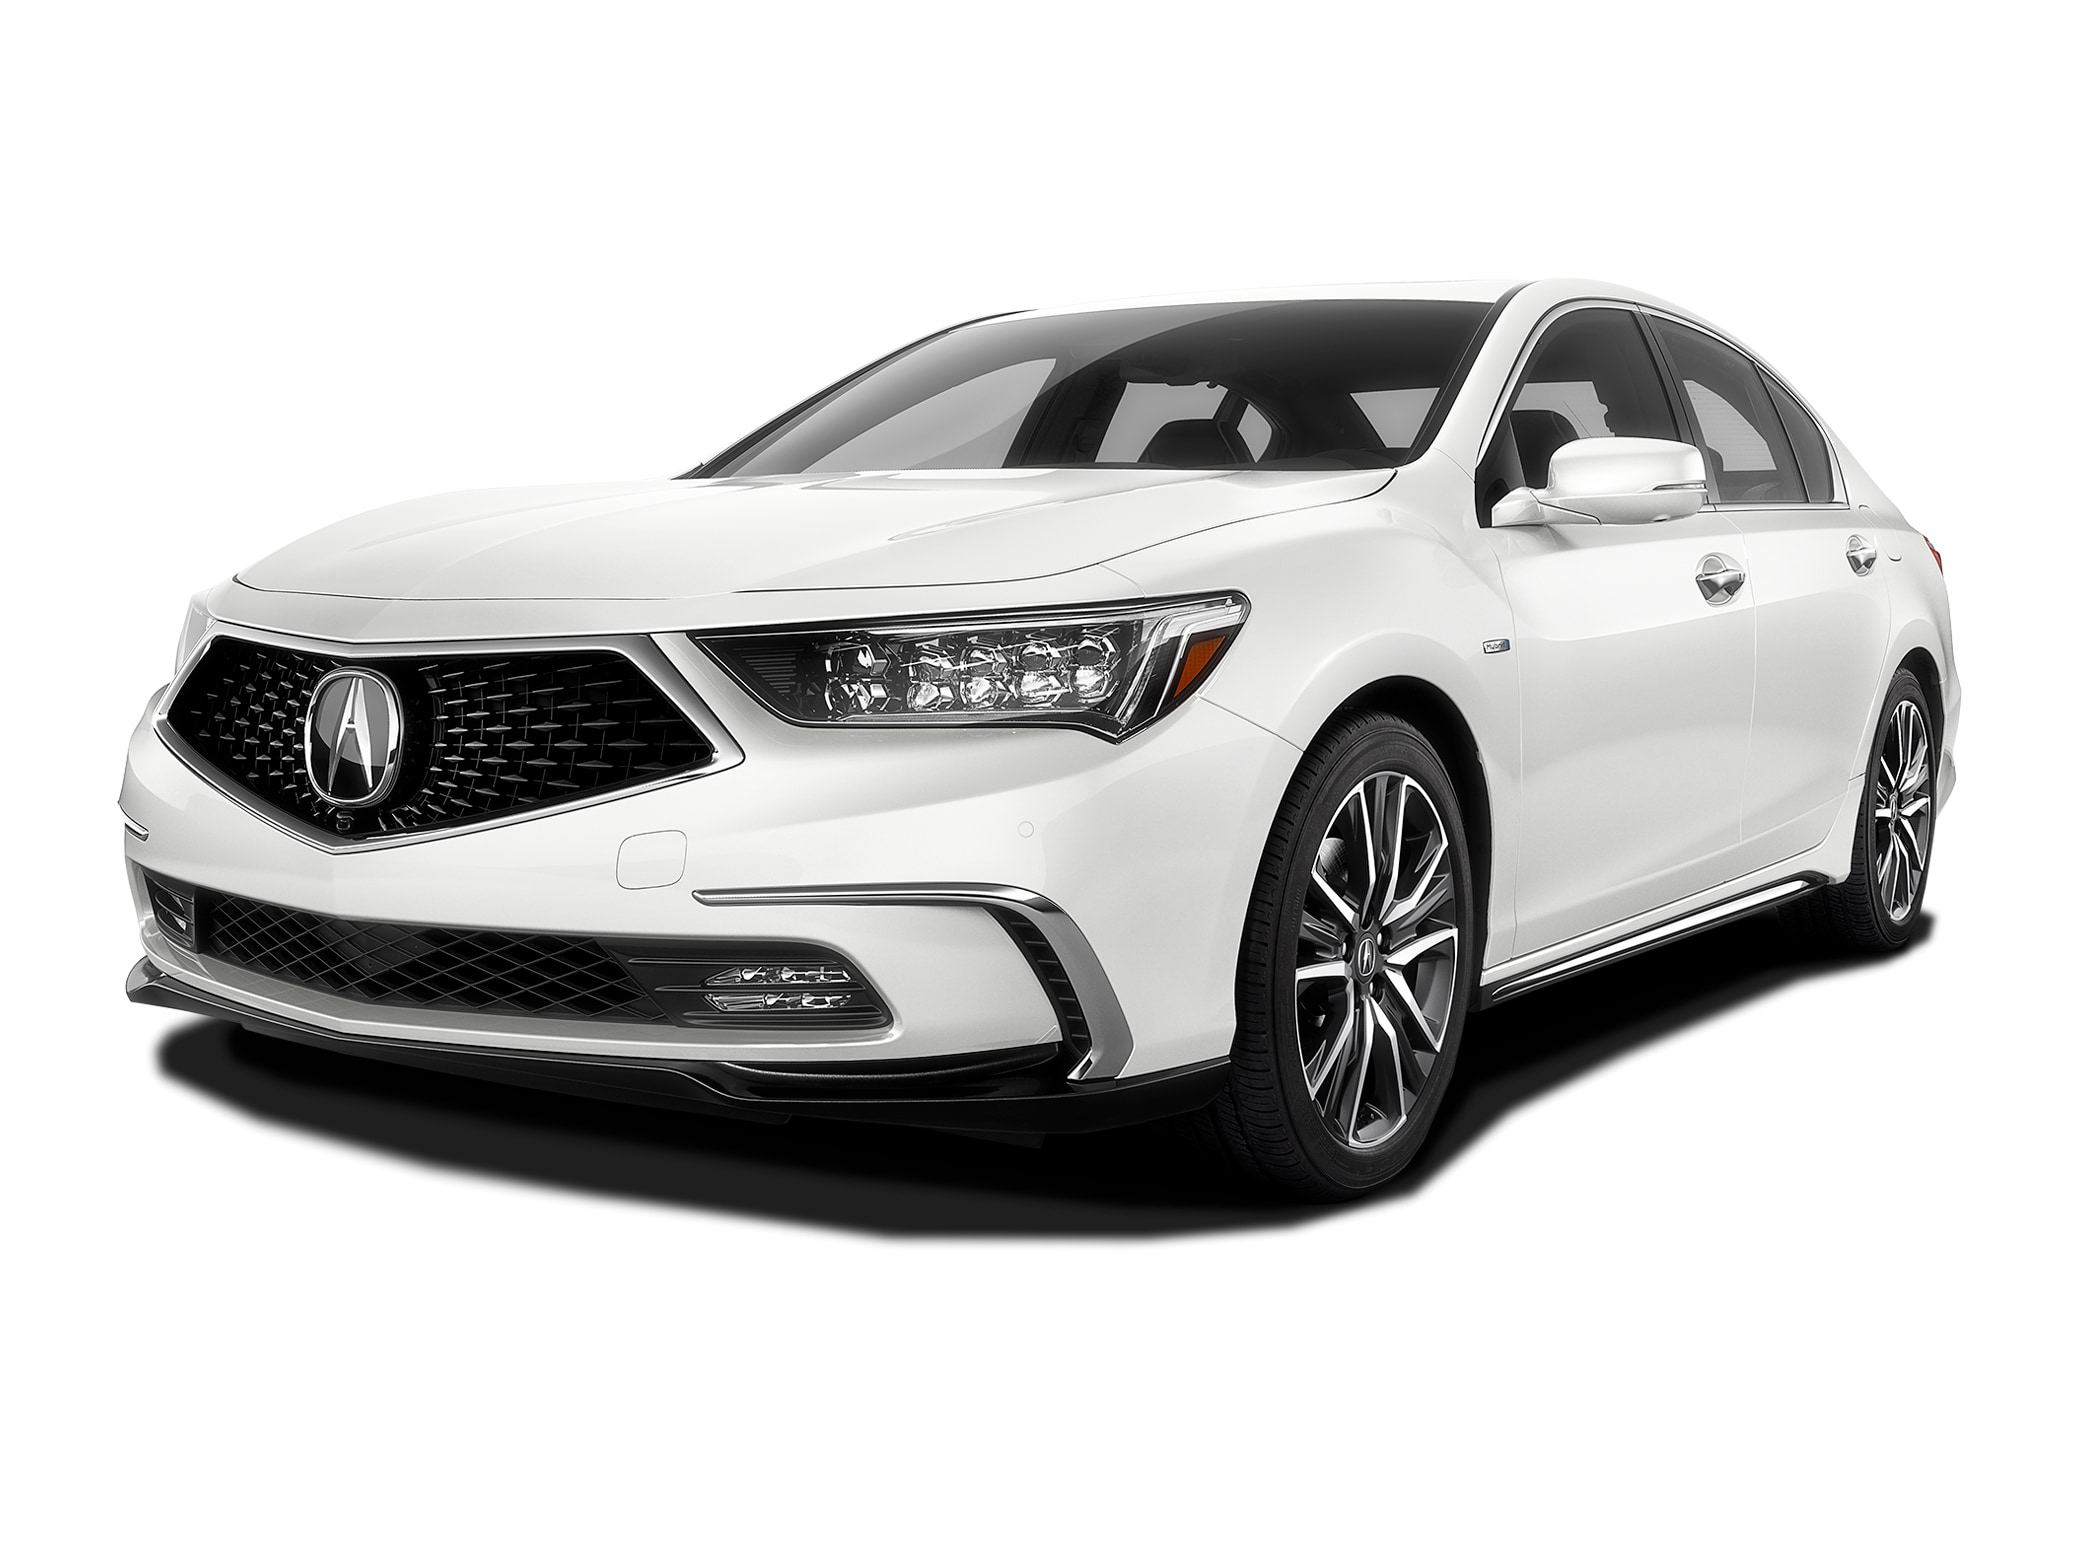 //images.dealer.com/ddc/vehicles/2019/Acura/RLX%20Sport%20Hybrid/Sedan/trim_Base_Advance_Package_0701f0/oem/exterior/exterior-640-en_US.jpg